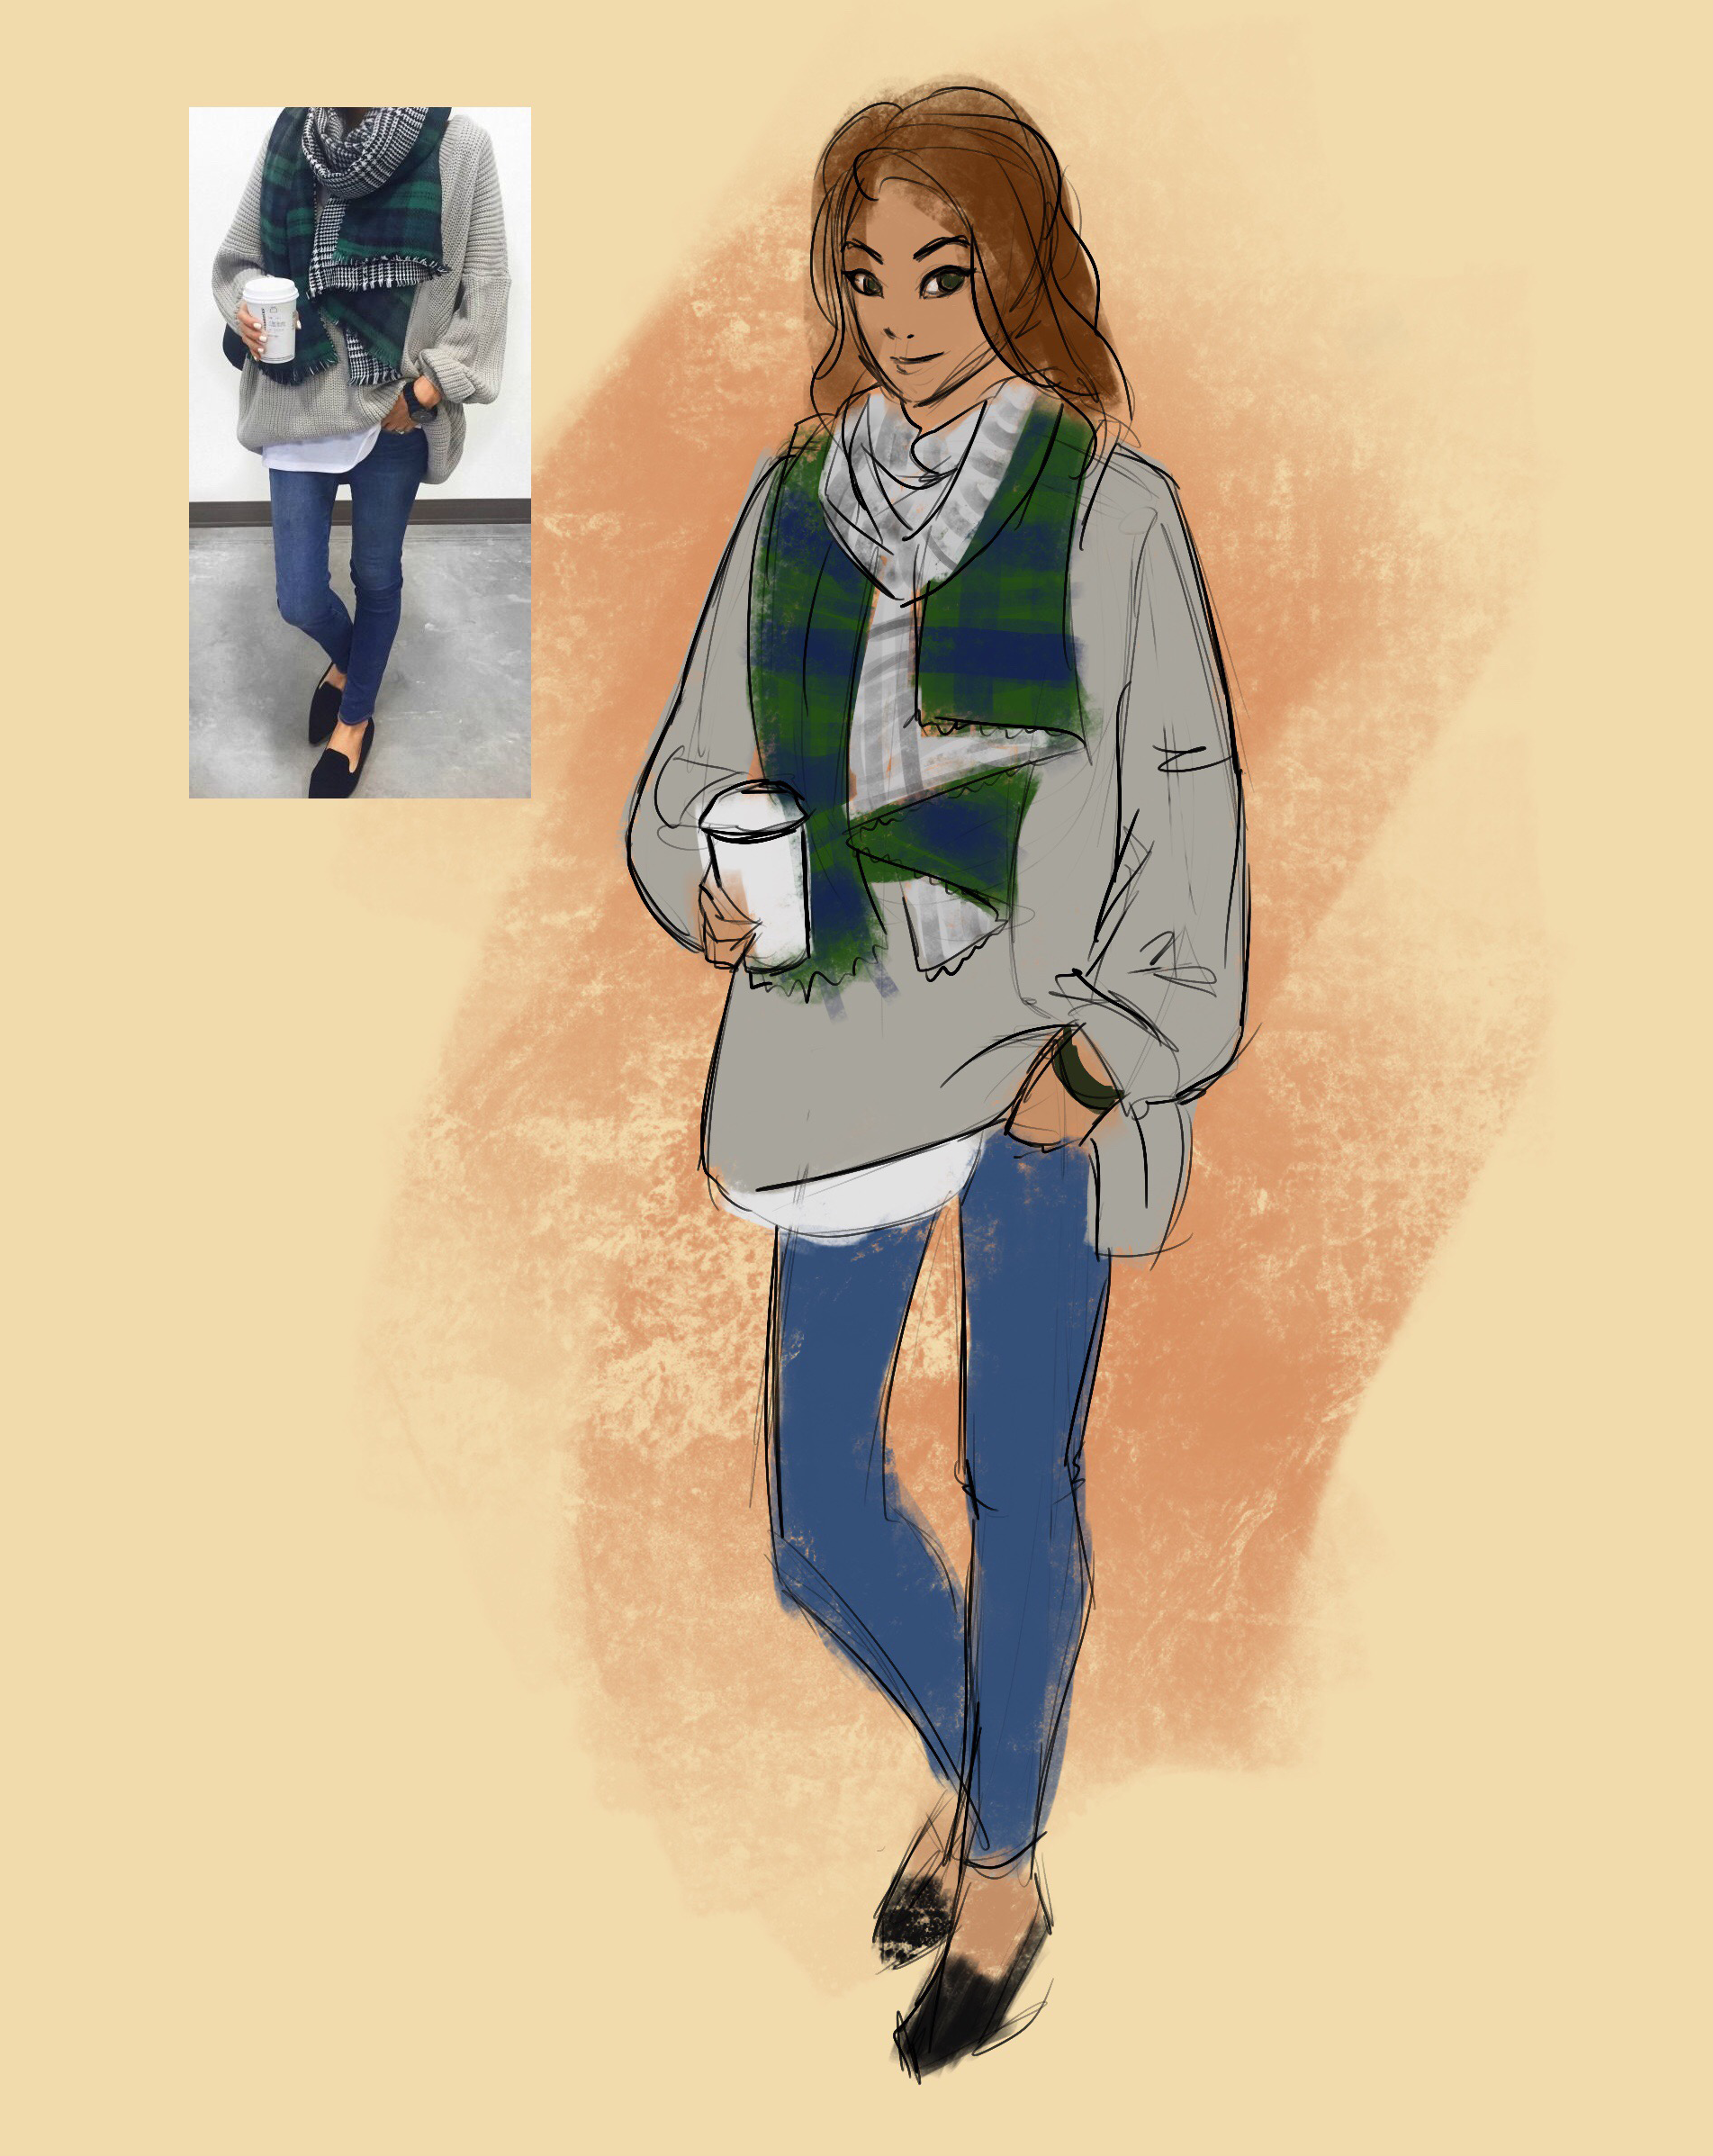 OutfitDrawing-02_July2017_by_HannahMarshall